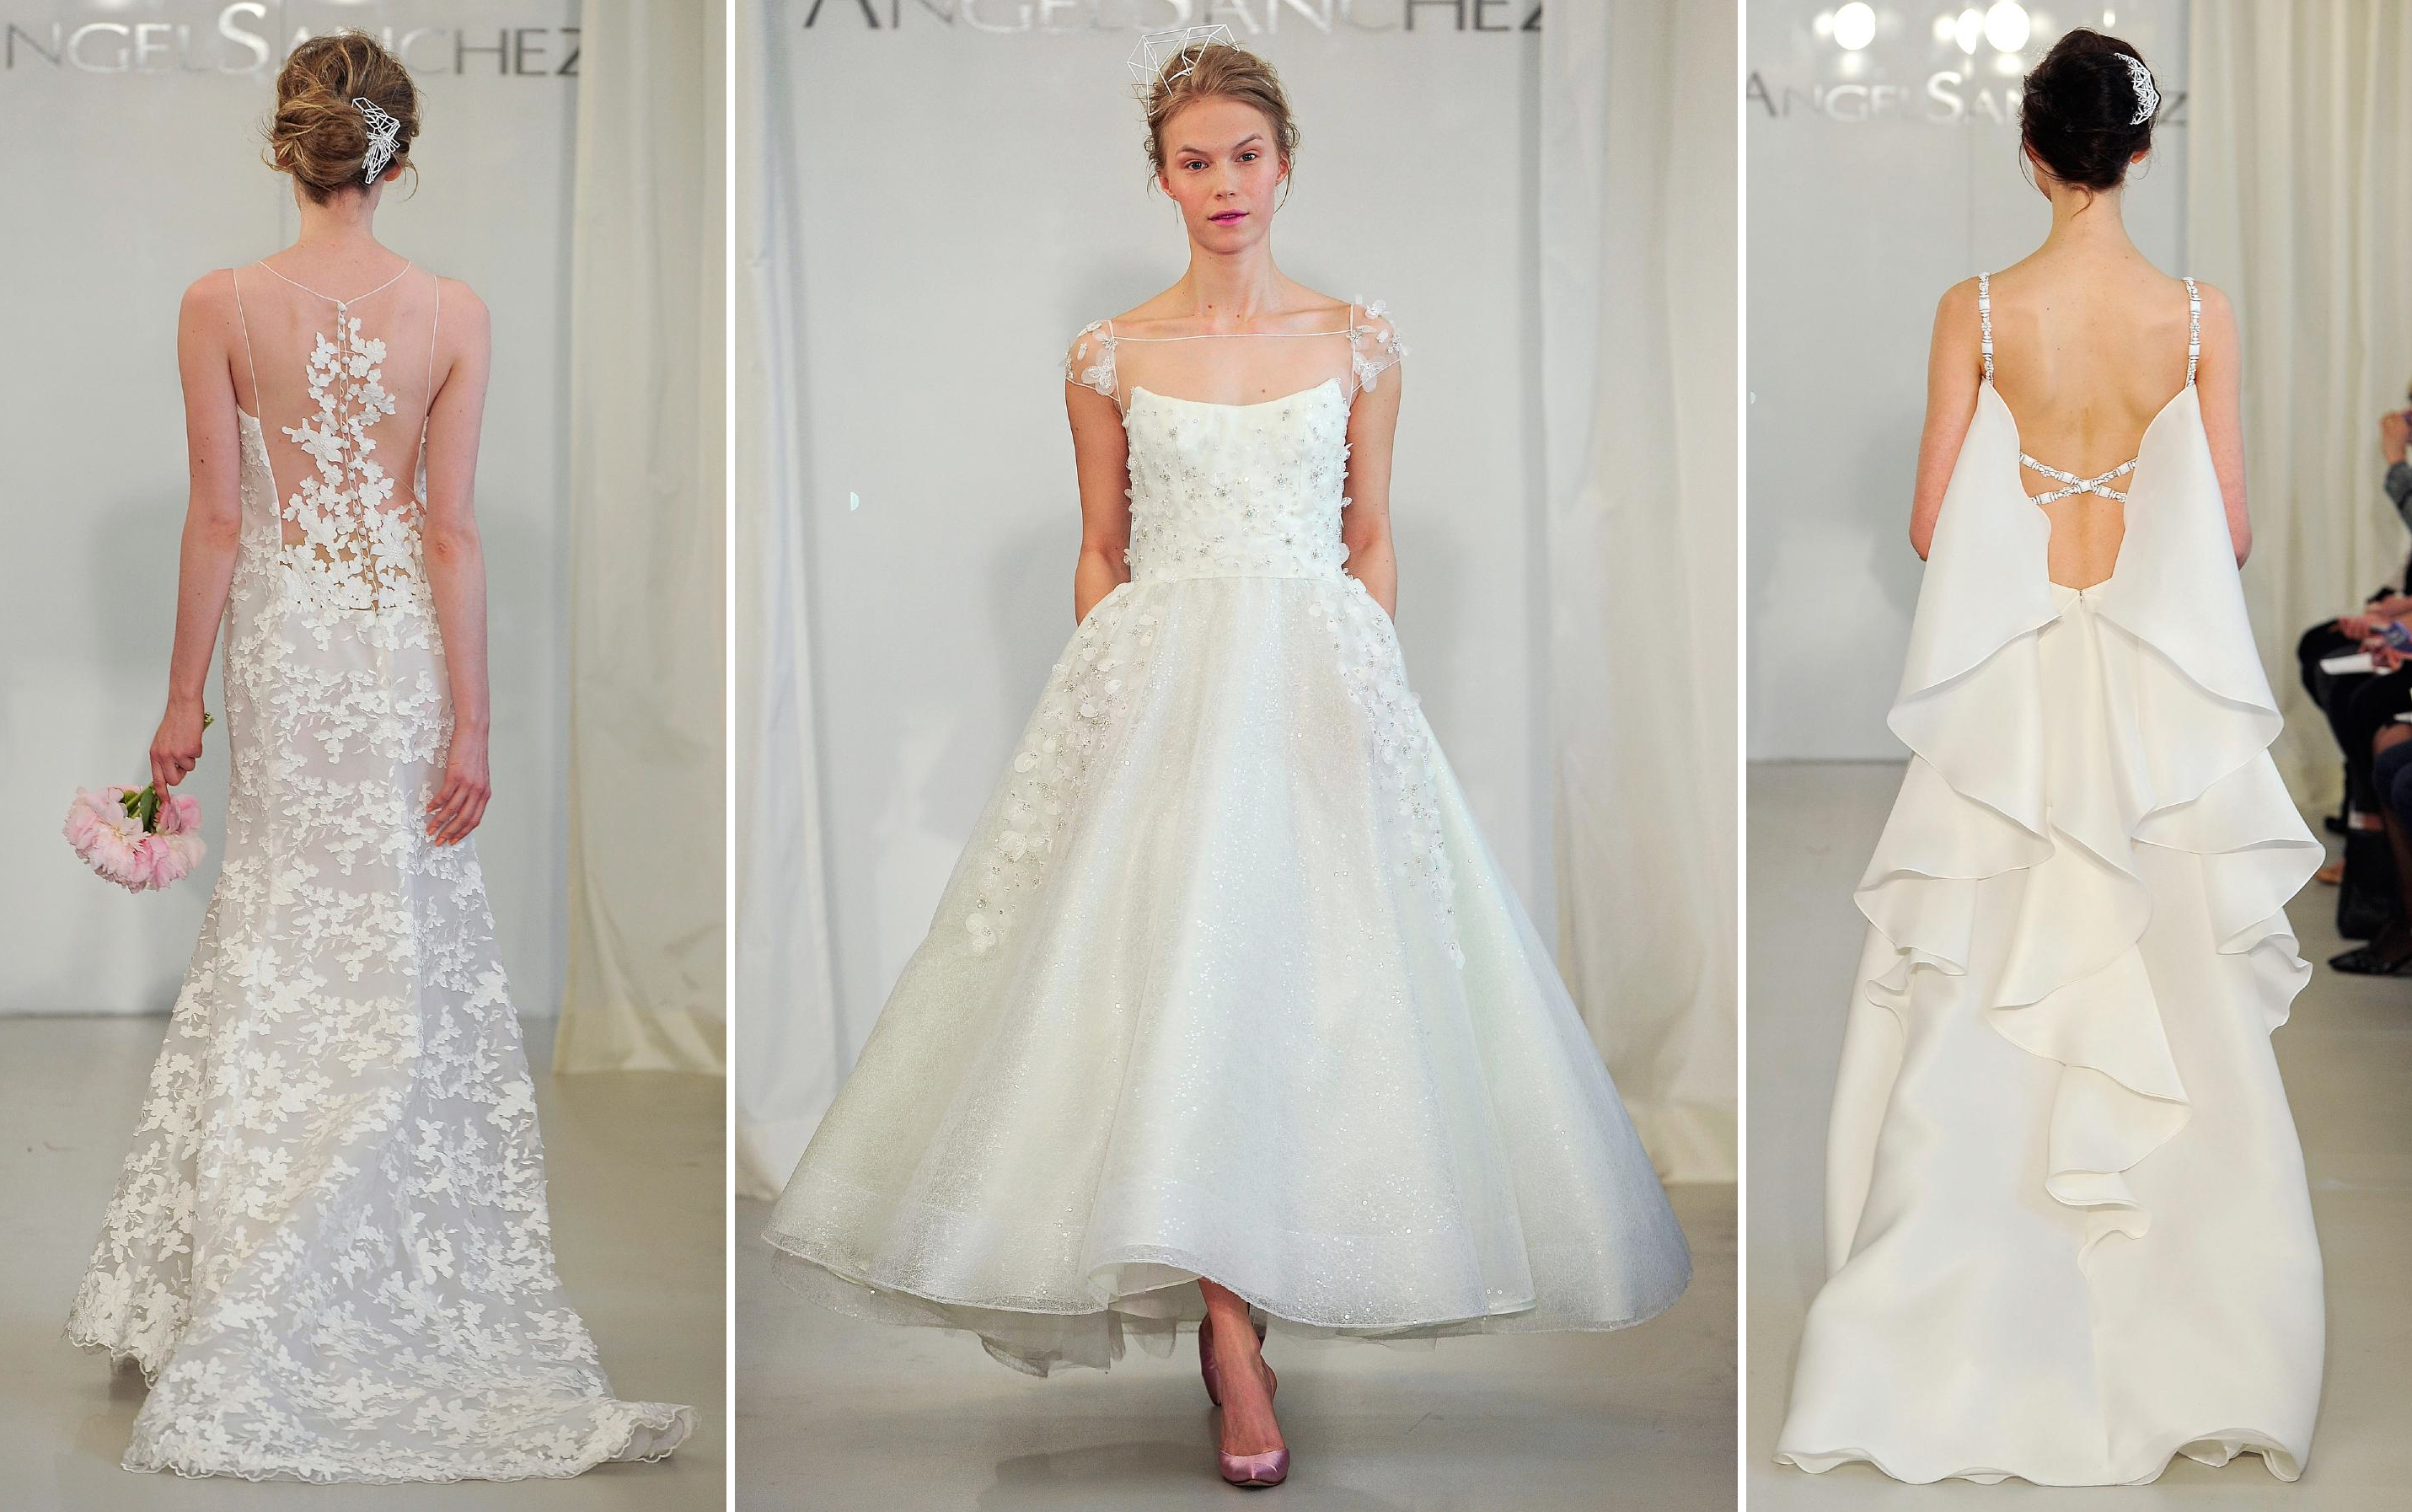 Images of Wedding Dresses 2014 - The Fashions Of Paradise